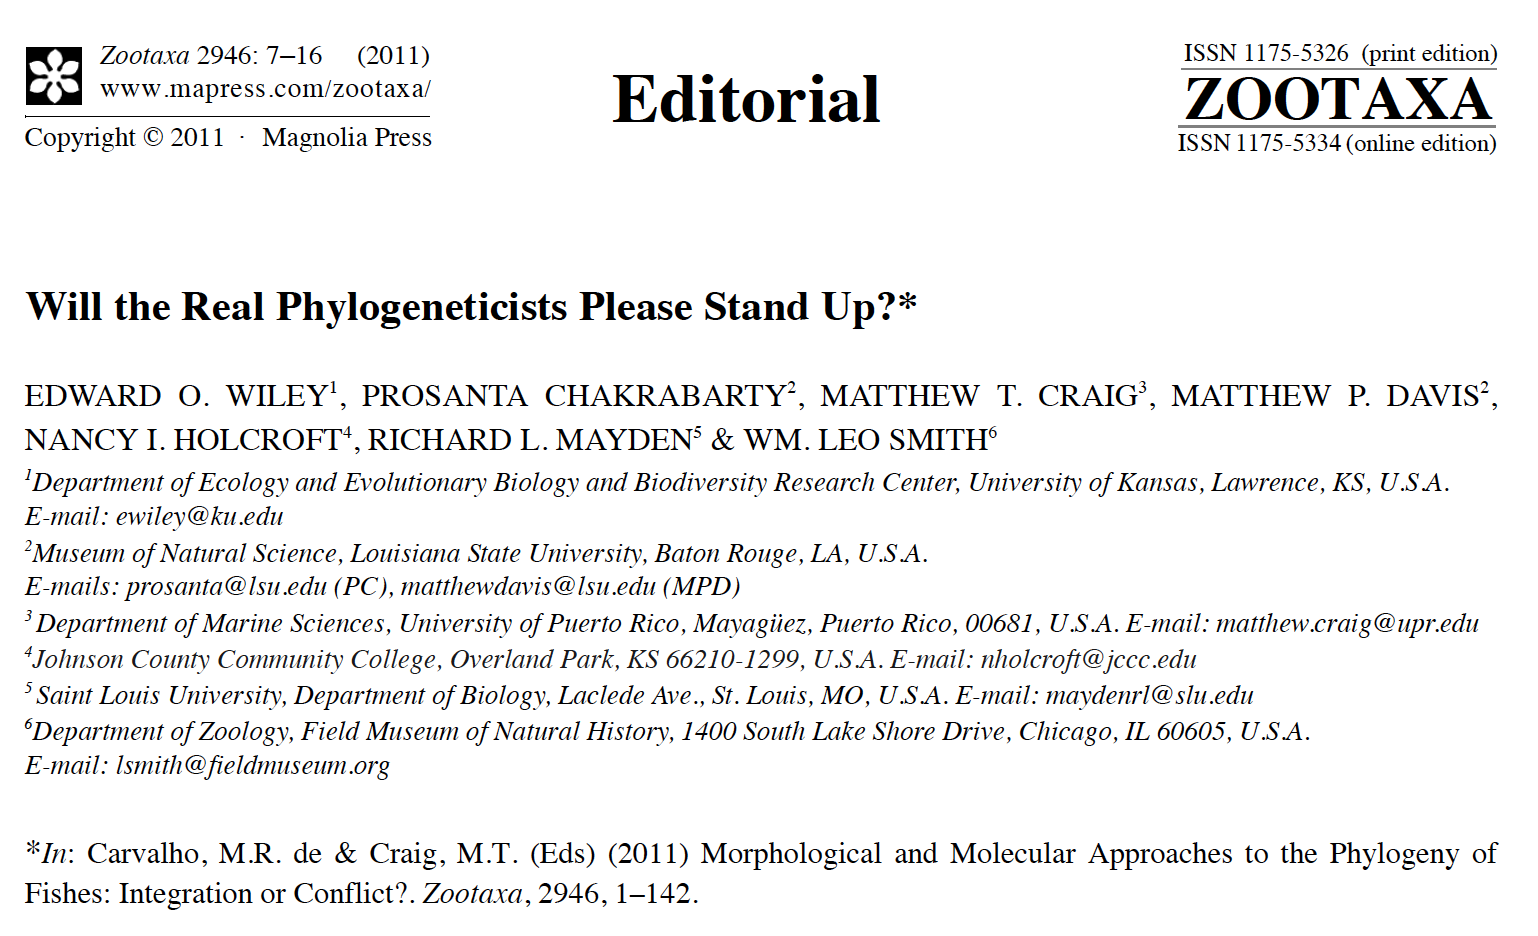 Debate on Phylogenetic Character Data - 06. Wiley, E.O., Chakrabarty, P., Craig, M.T., Davis, M.P., Holcroft, N.I., Mayden, R.L., and Smith, W.L. (2011). Will the real phylogeneticists please stand up? Zootaxa. 2946: 7-16.Google ScholarOPEN ACCESS